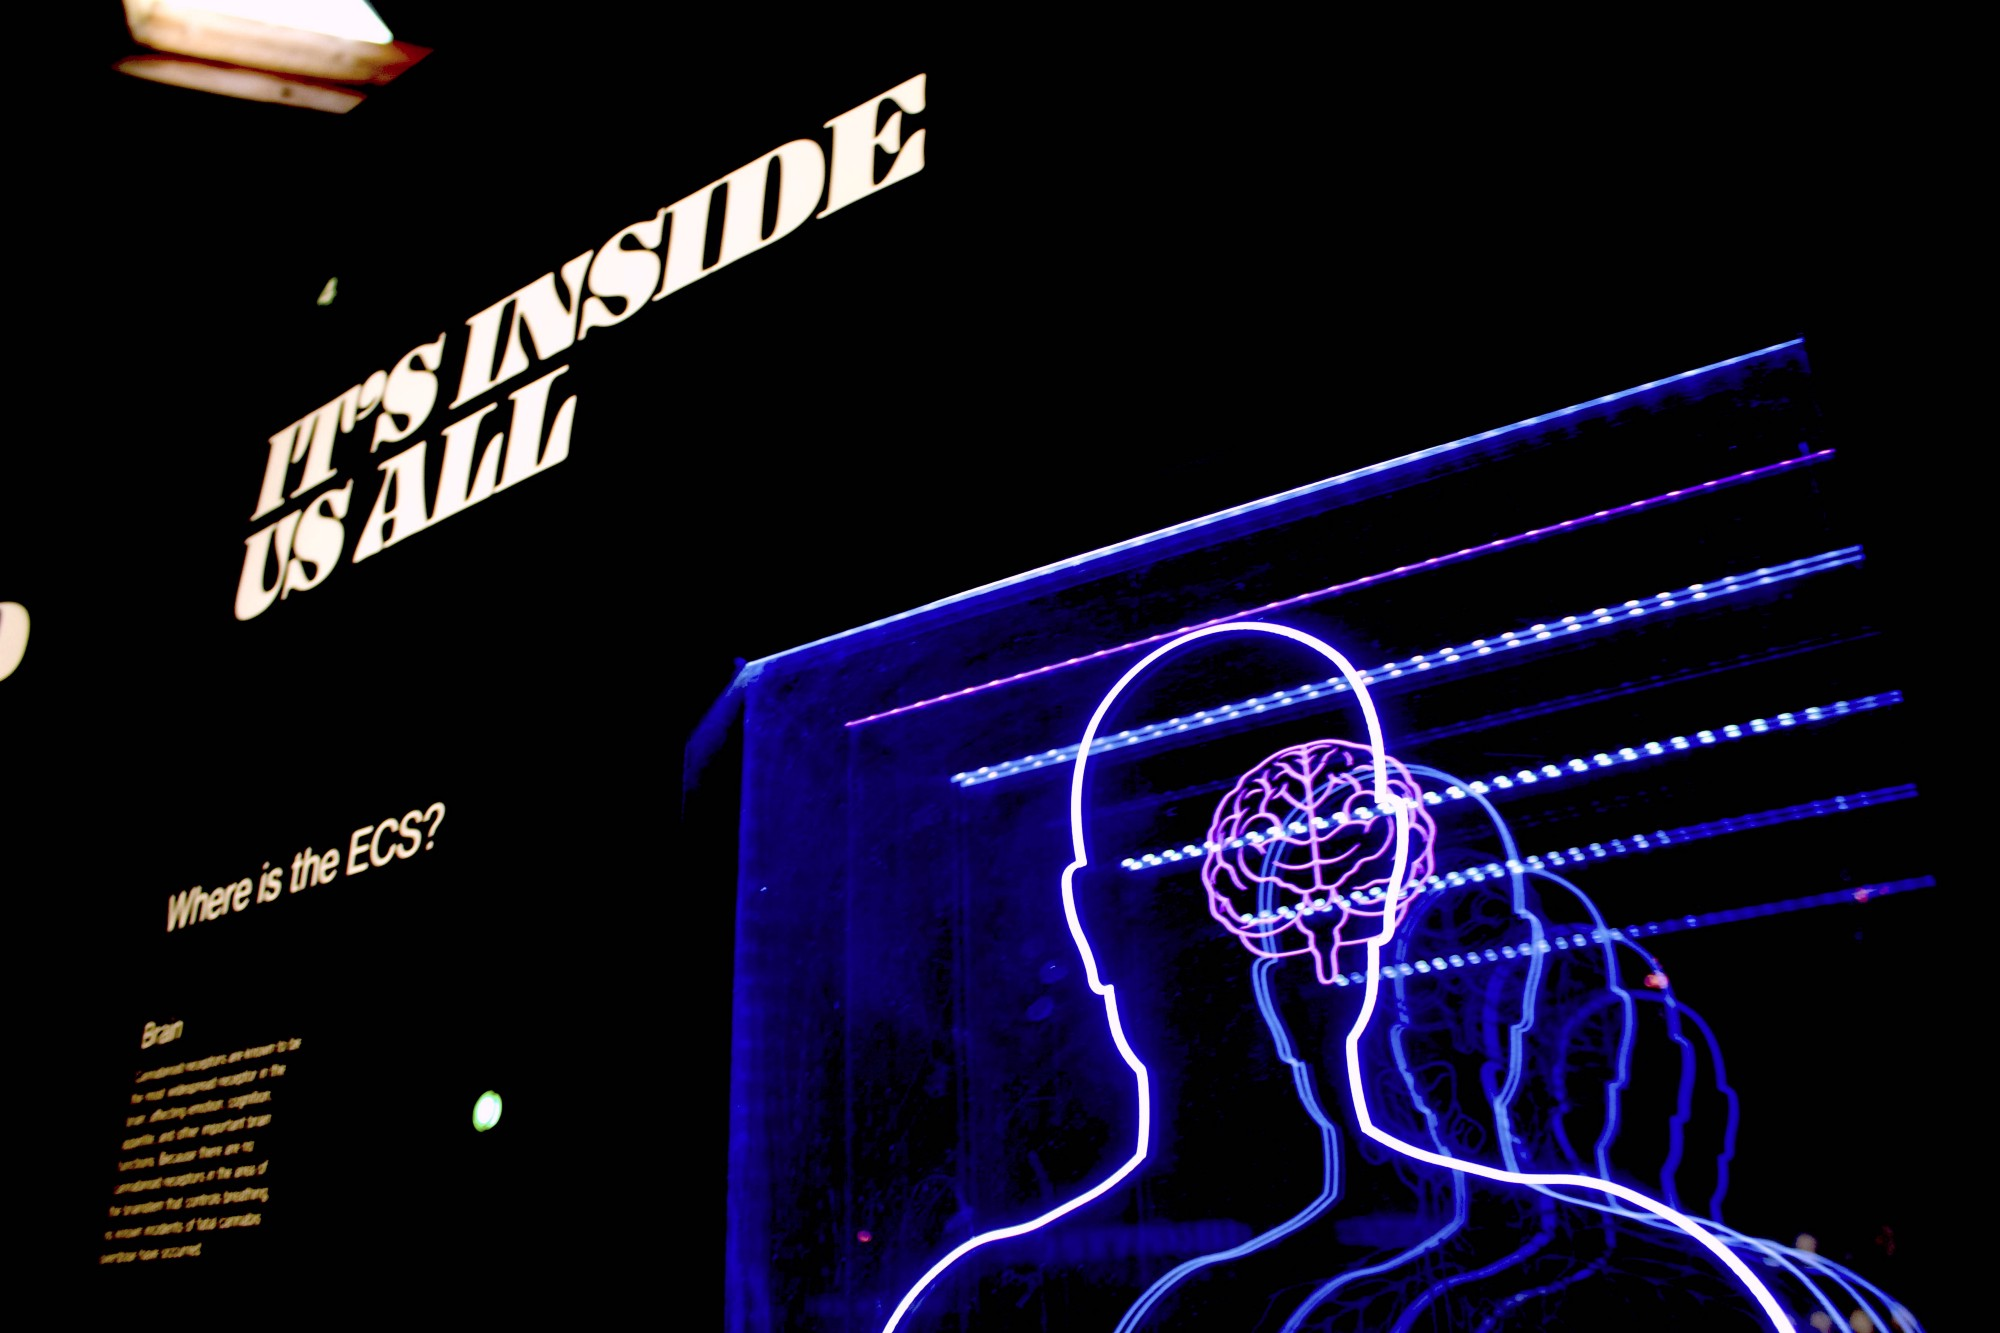 neon signage of a human figure with a brain on a black background